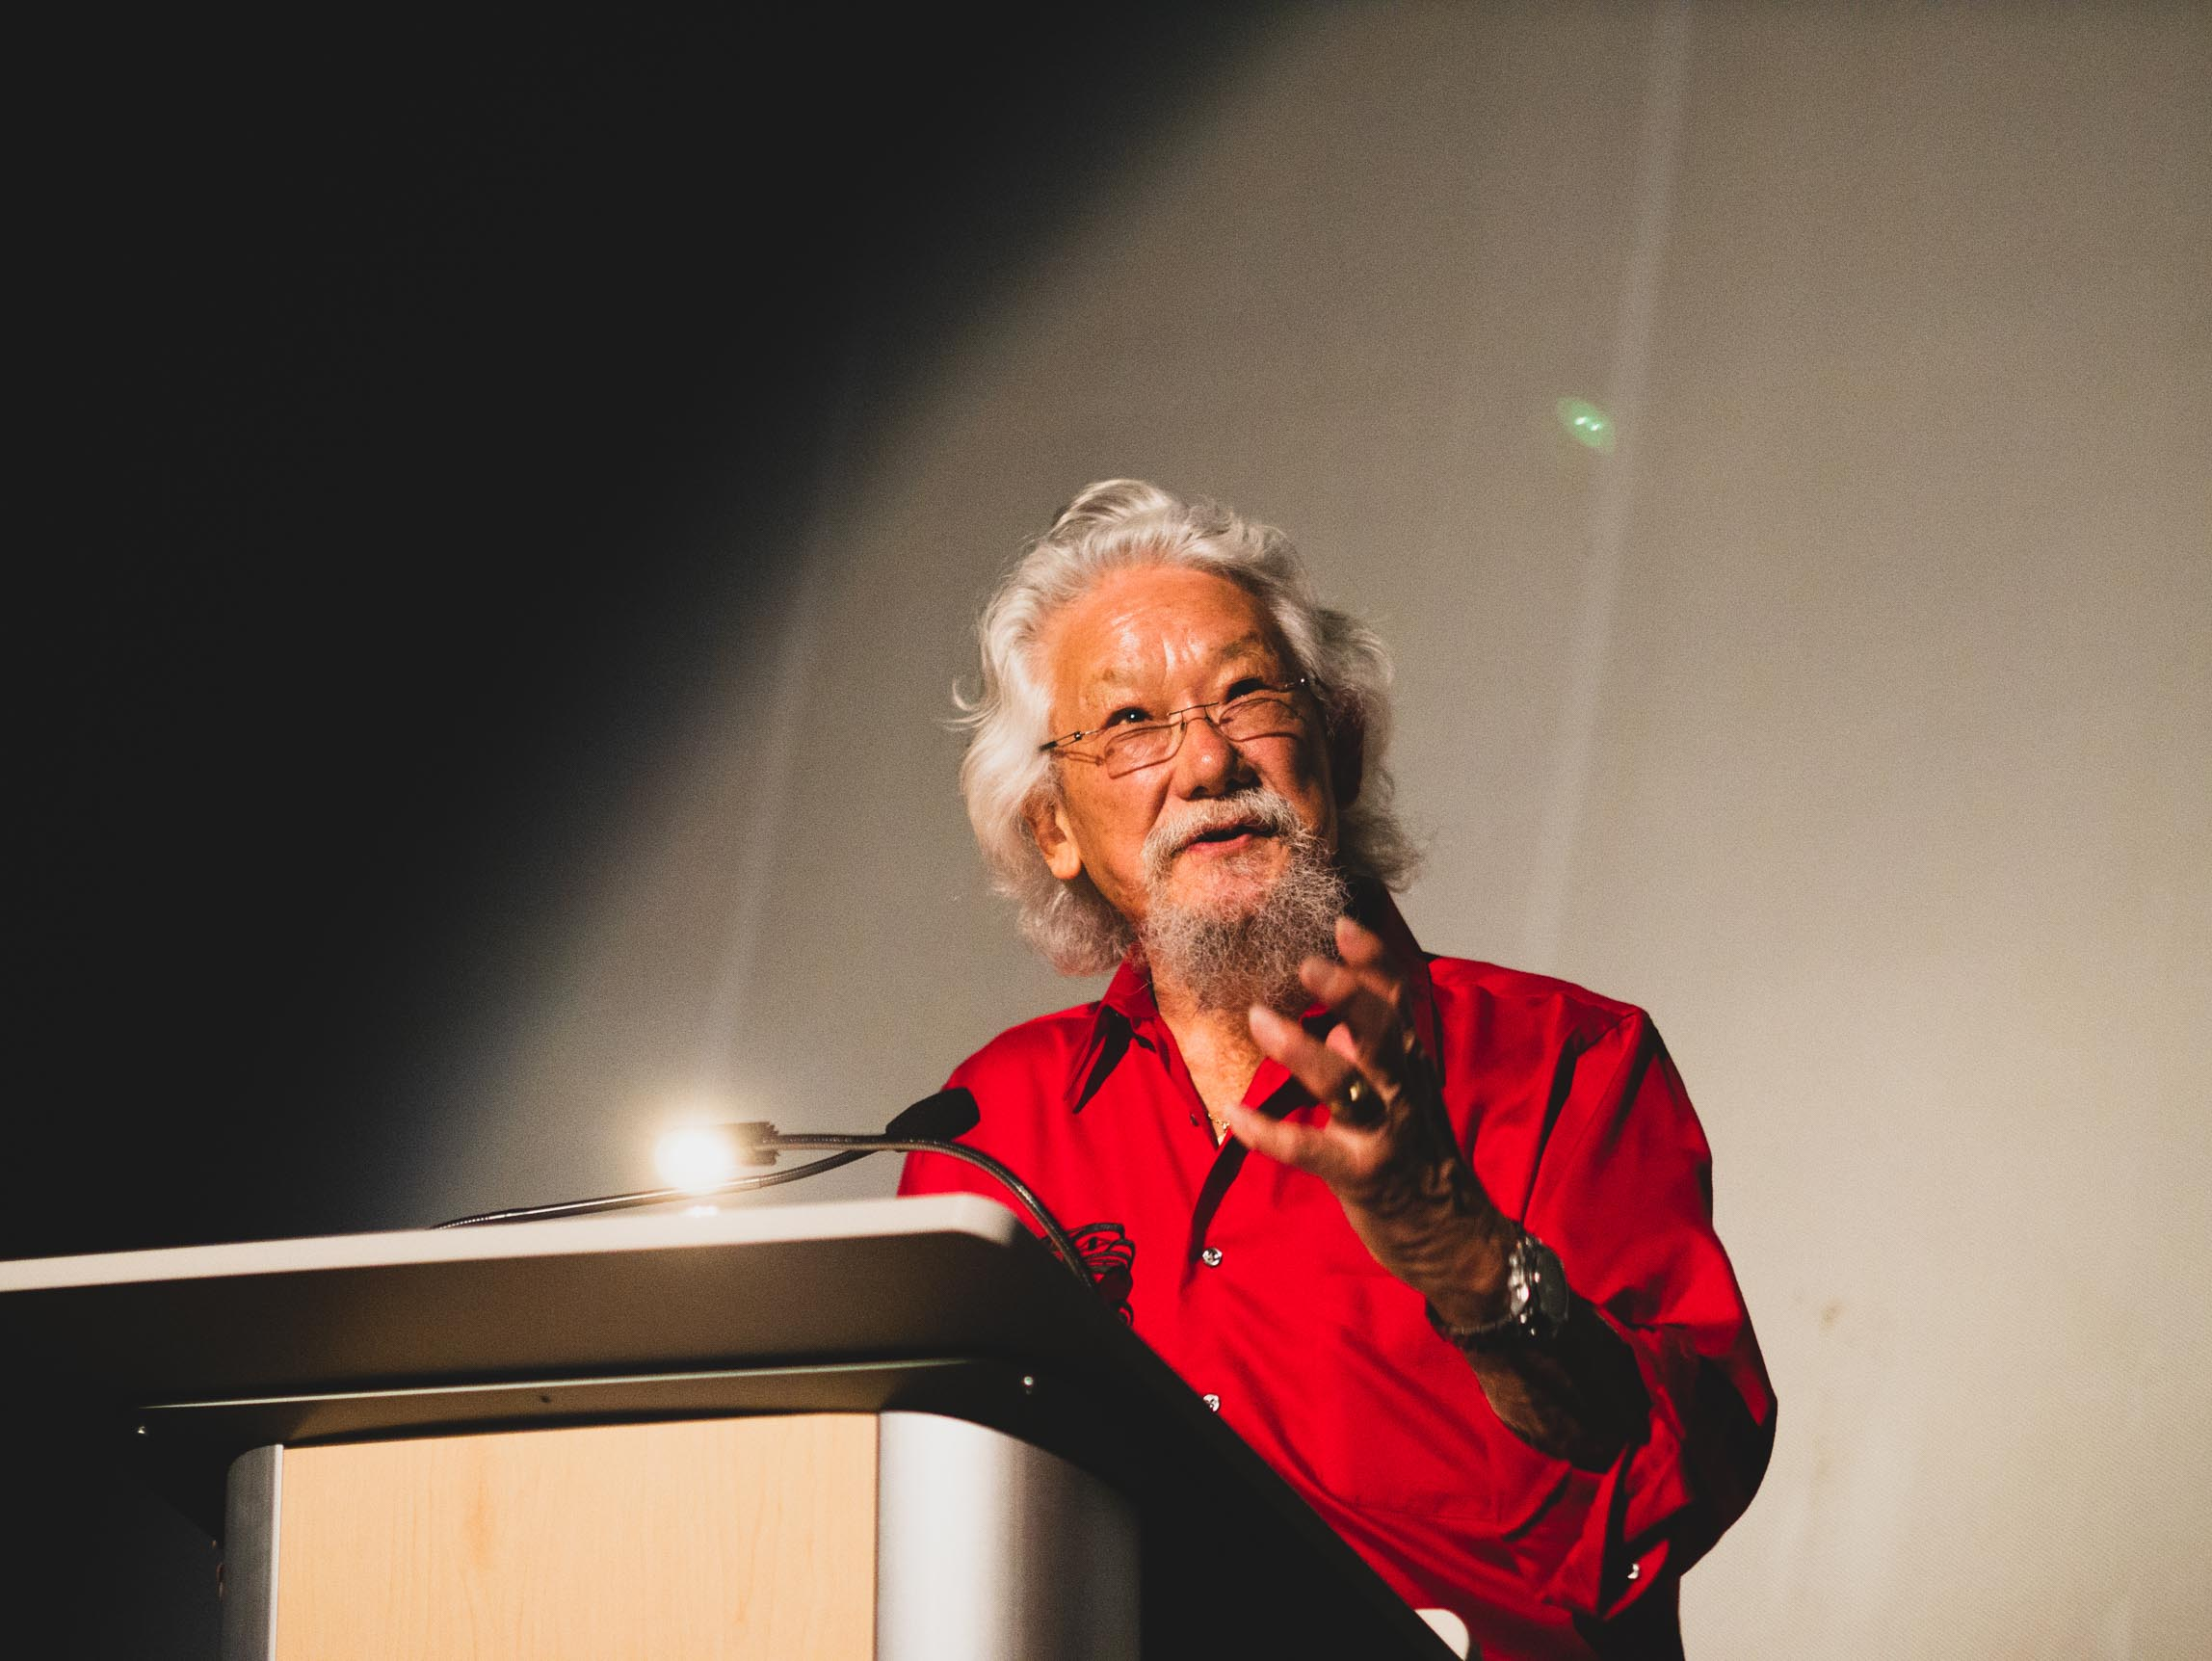 david suzuki on stage Elements2019_web-195 (1).jpg